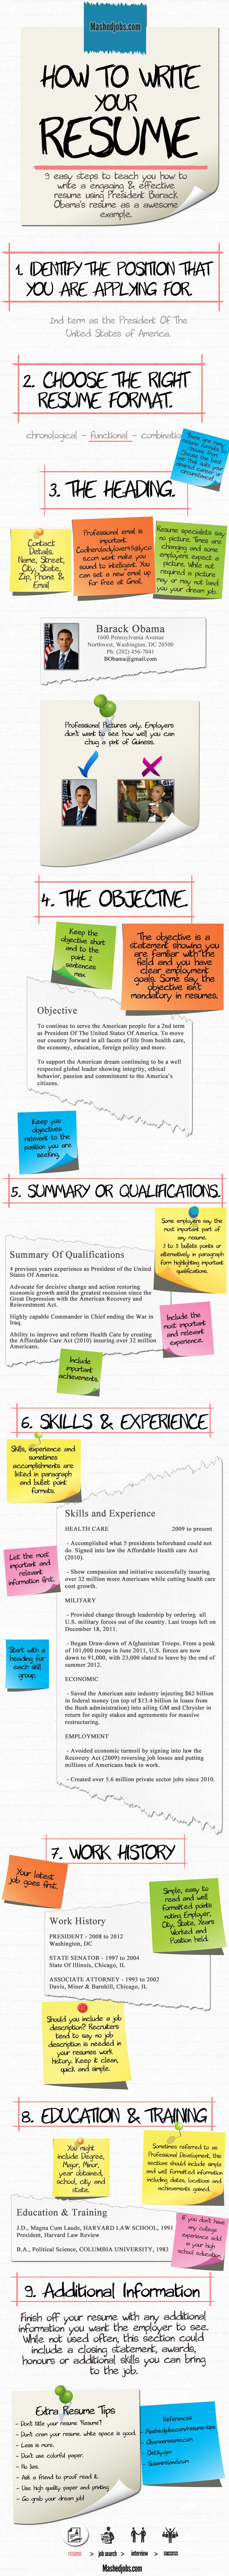 How to write your resume #infographic